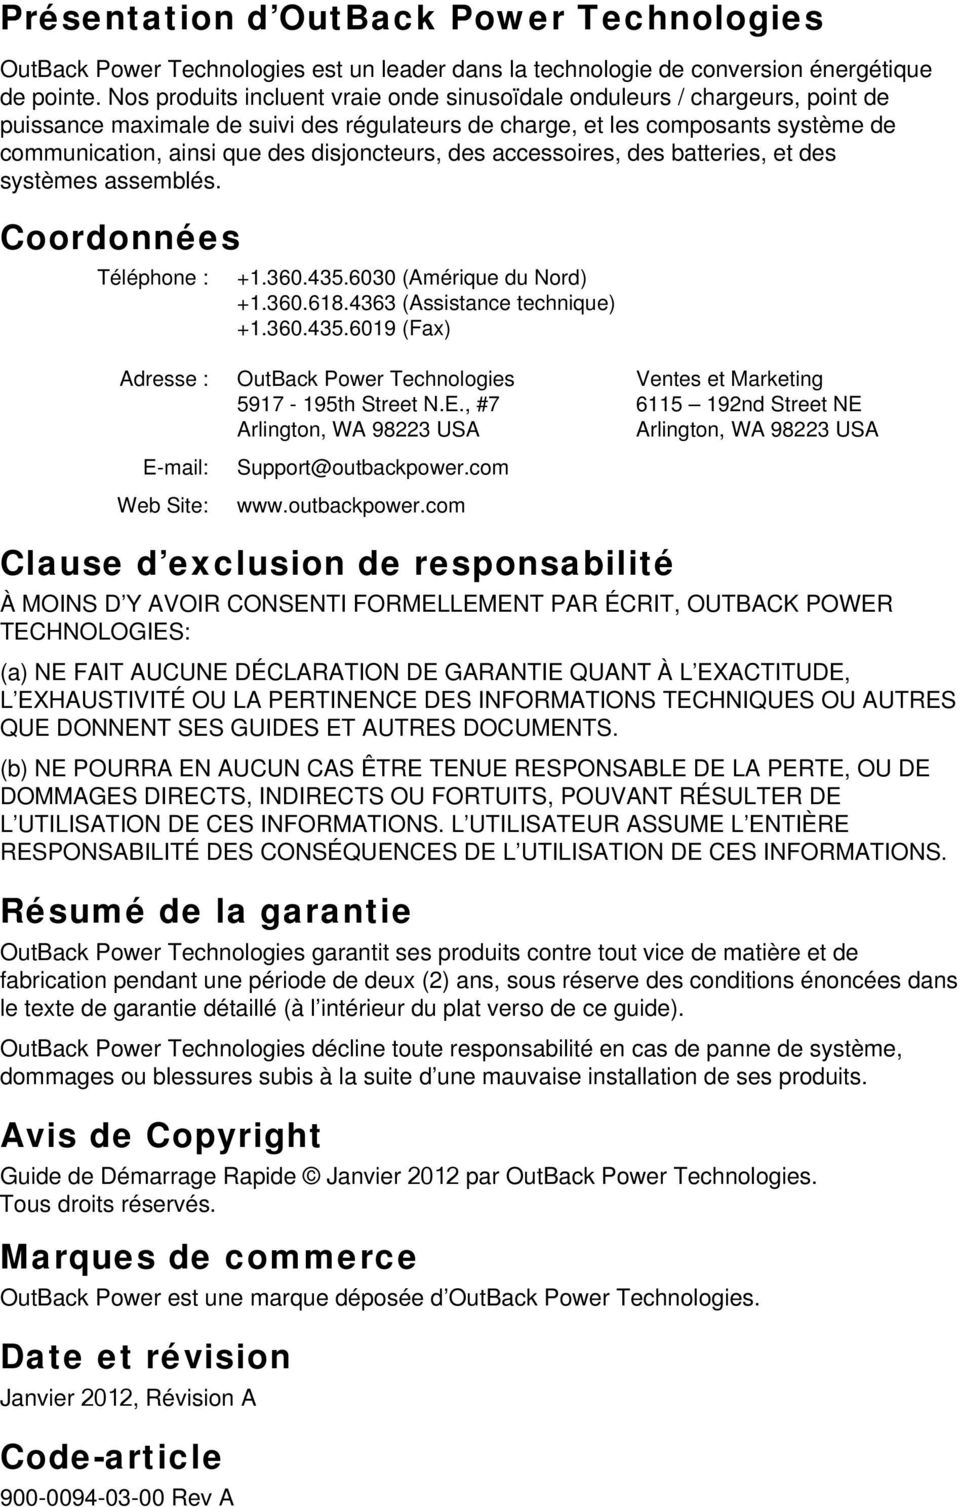 disjoncteurs, des accessoires, des batteries, et des systèmes assemblés. Coordonnées Téléphone : +.360.435.6030 (Amérique du ord) +.360.68.4363 (Assistance technique) +.360.435.609 (Fax) Adresse : utback Power Technologies Ventes et Marketing 597-95th Street.